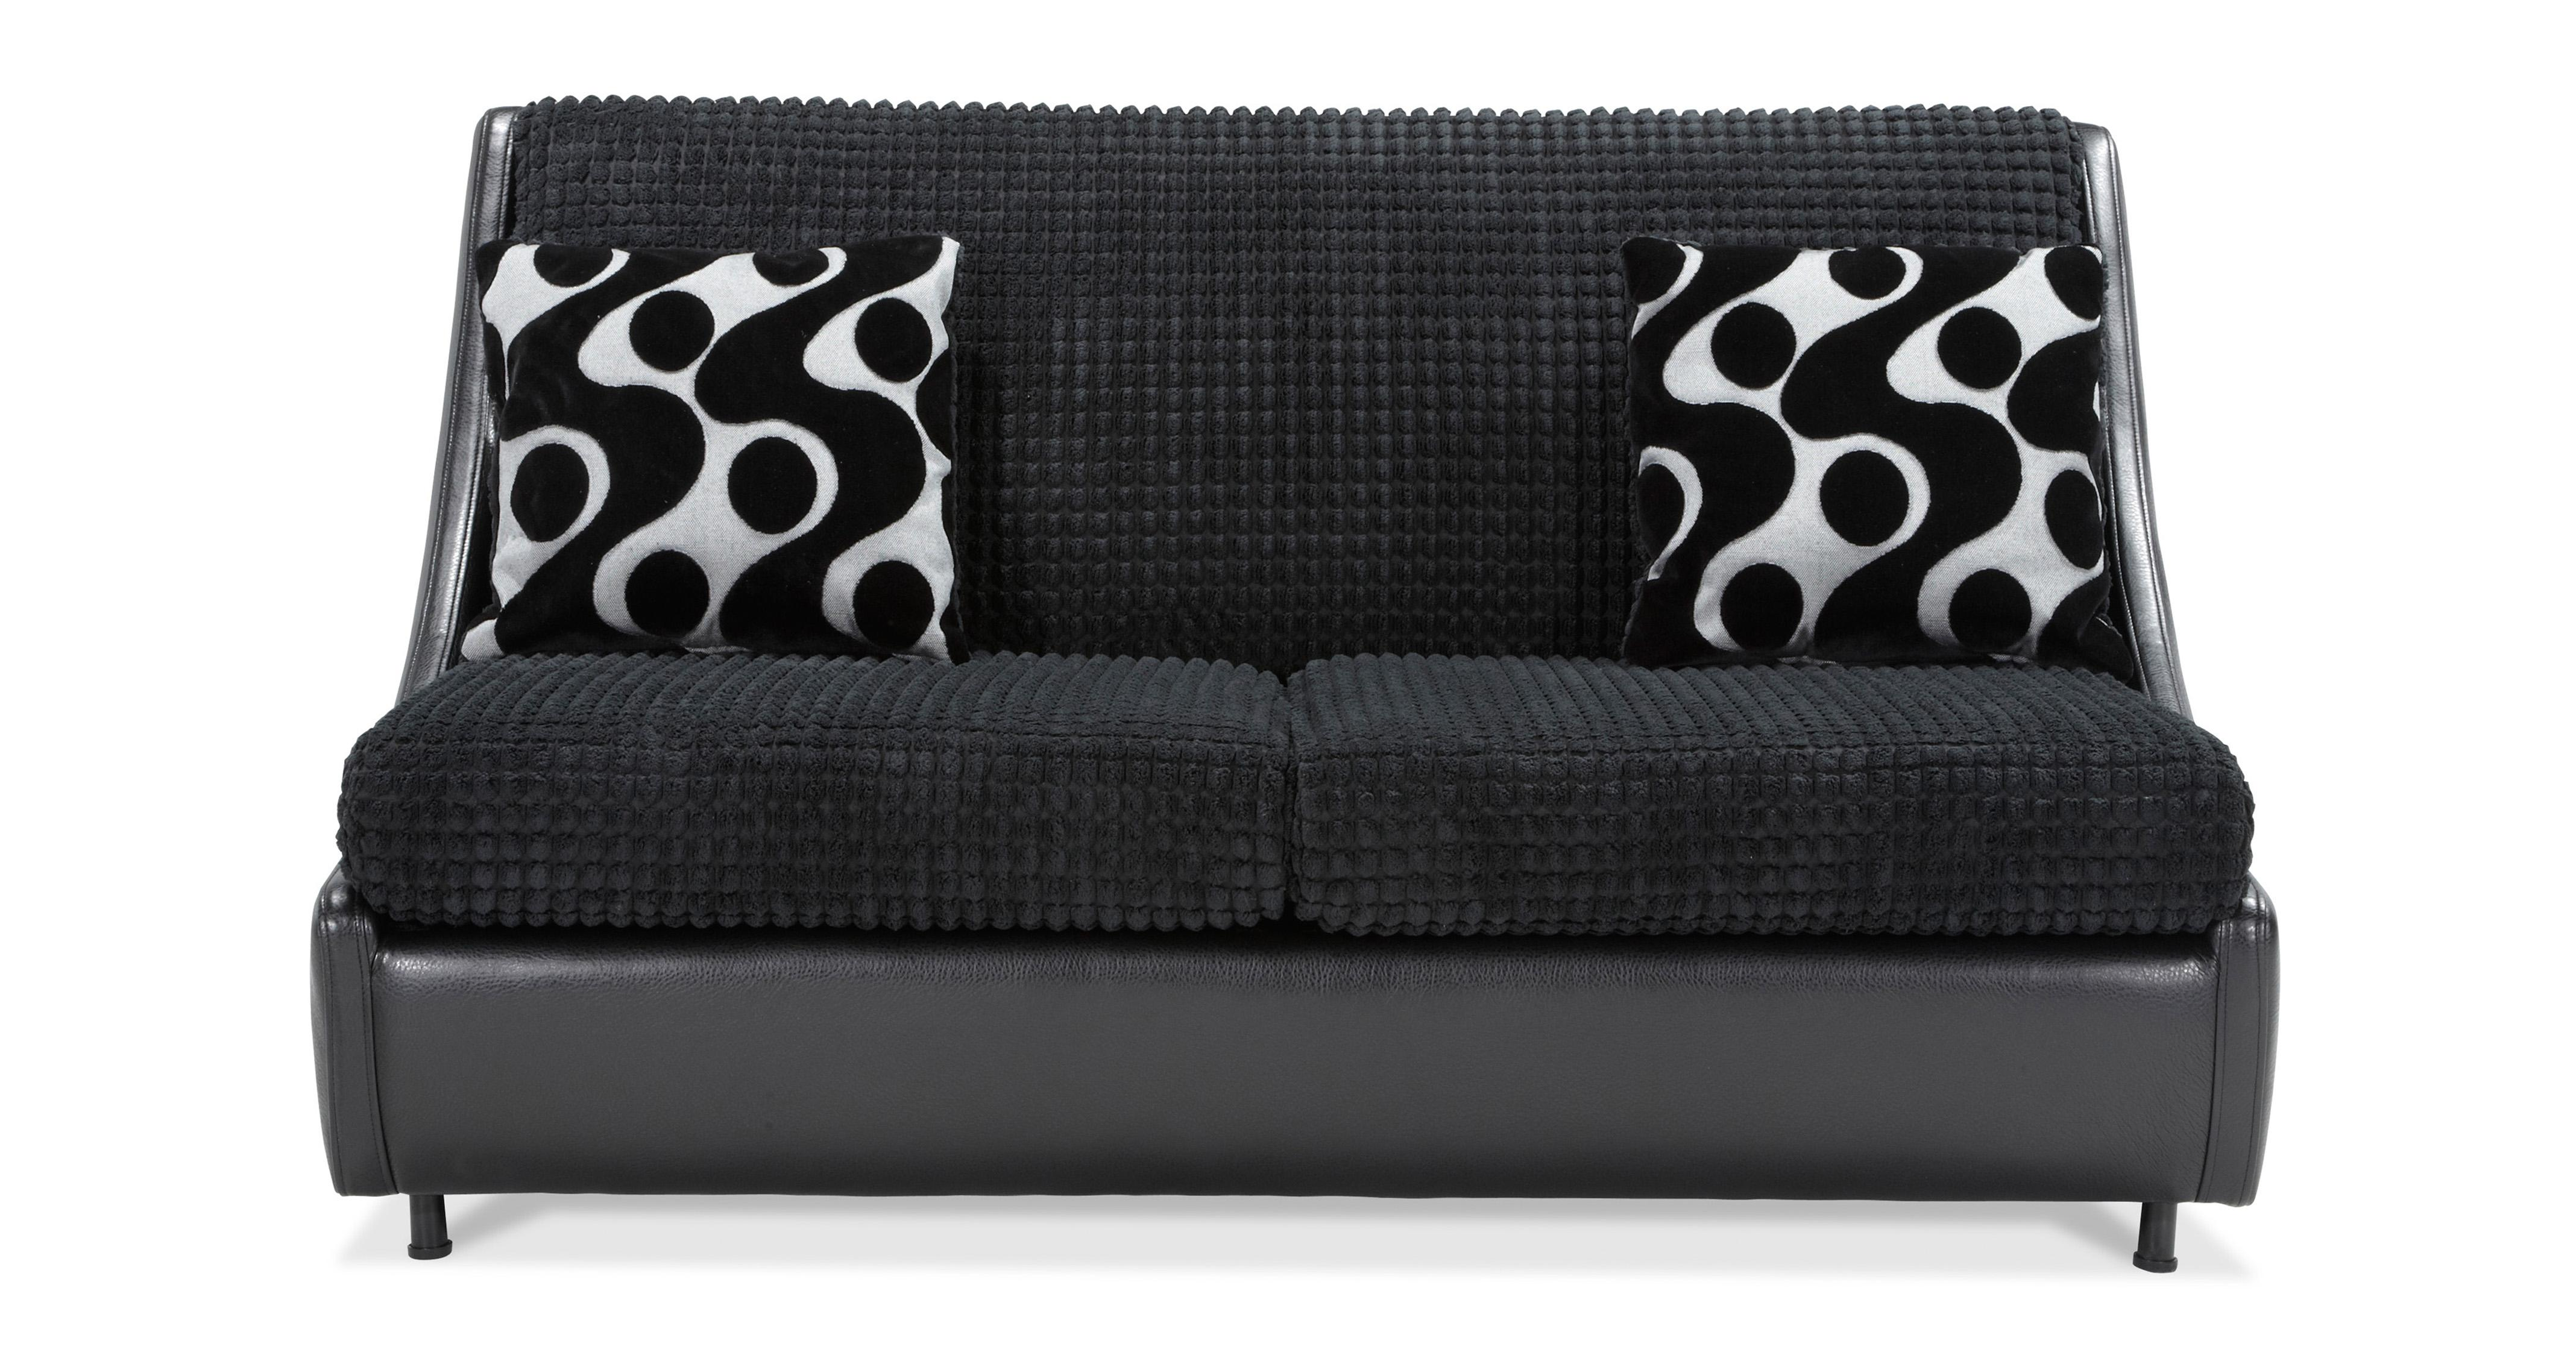 Pax 2 Seater Compact Formal Back Sofa Bed Dfs